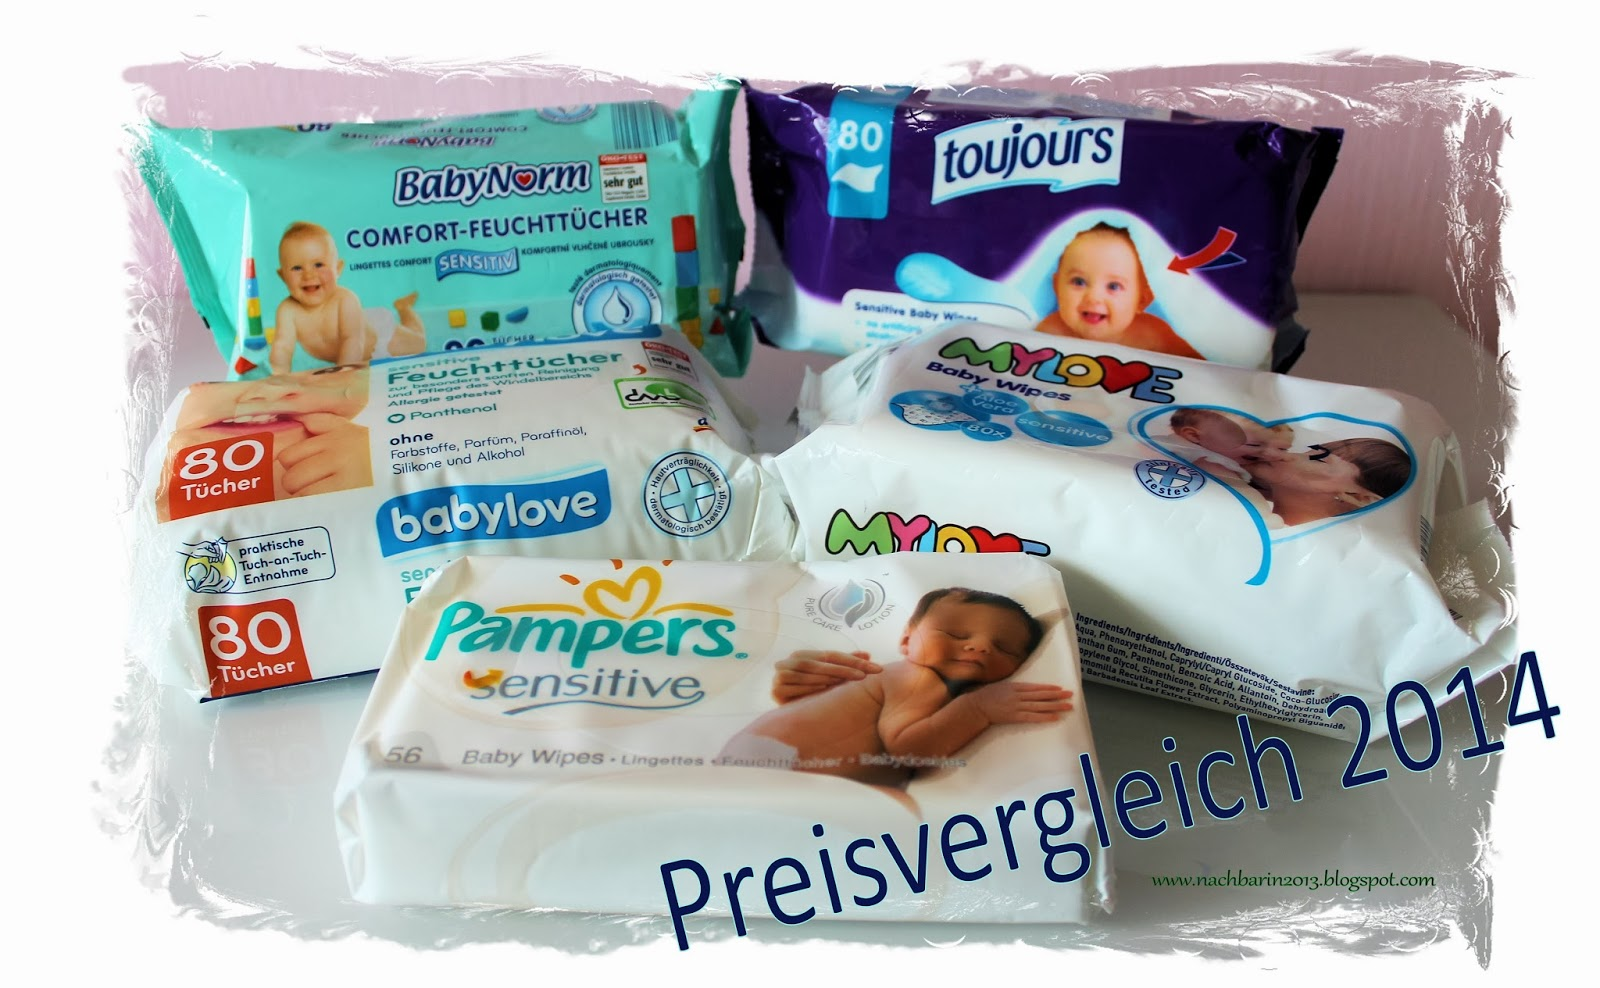 http://nachbarin2013.blogspot.co.at/2014/03/baby-feuchttucher-sensitiv.html#more